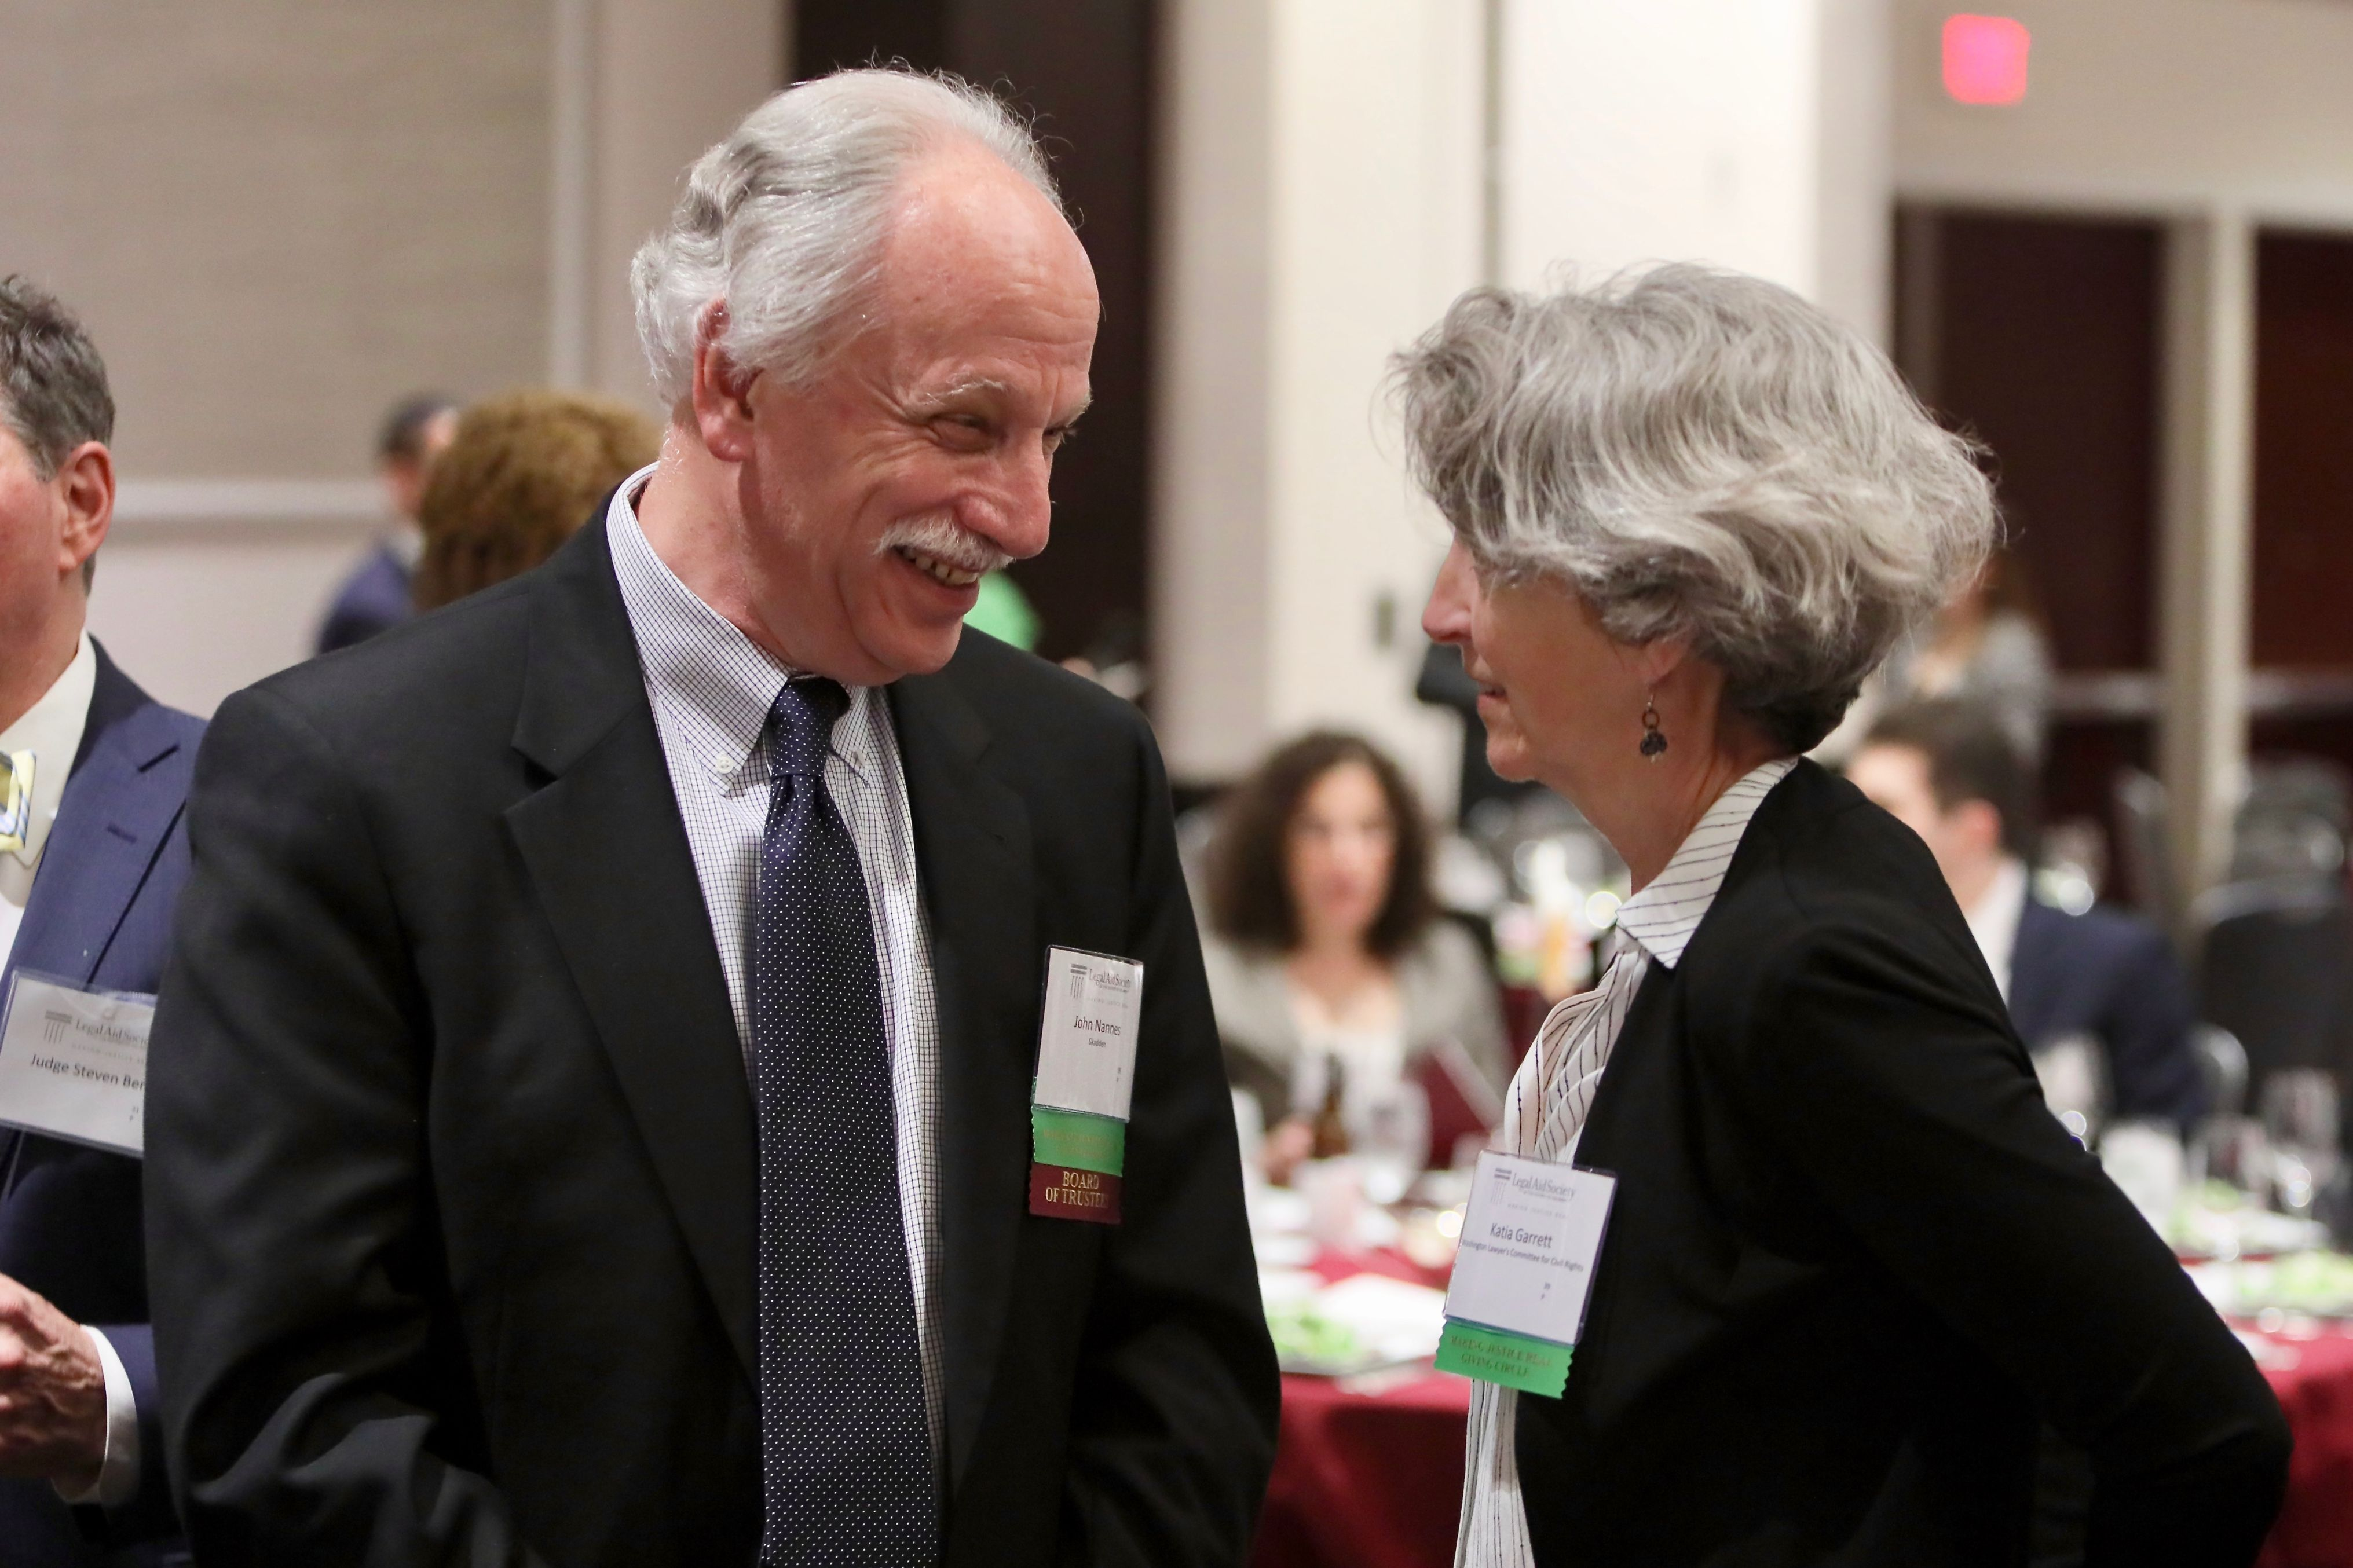 Photo of Board member John Nannes of Skadden, Arps, Slate, Meagher & Flom LLP with Katia Garrett of the Washington Lawyers' Committee for Civil Rights and Urban Affairs